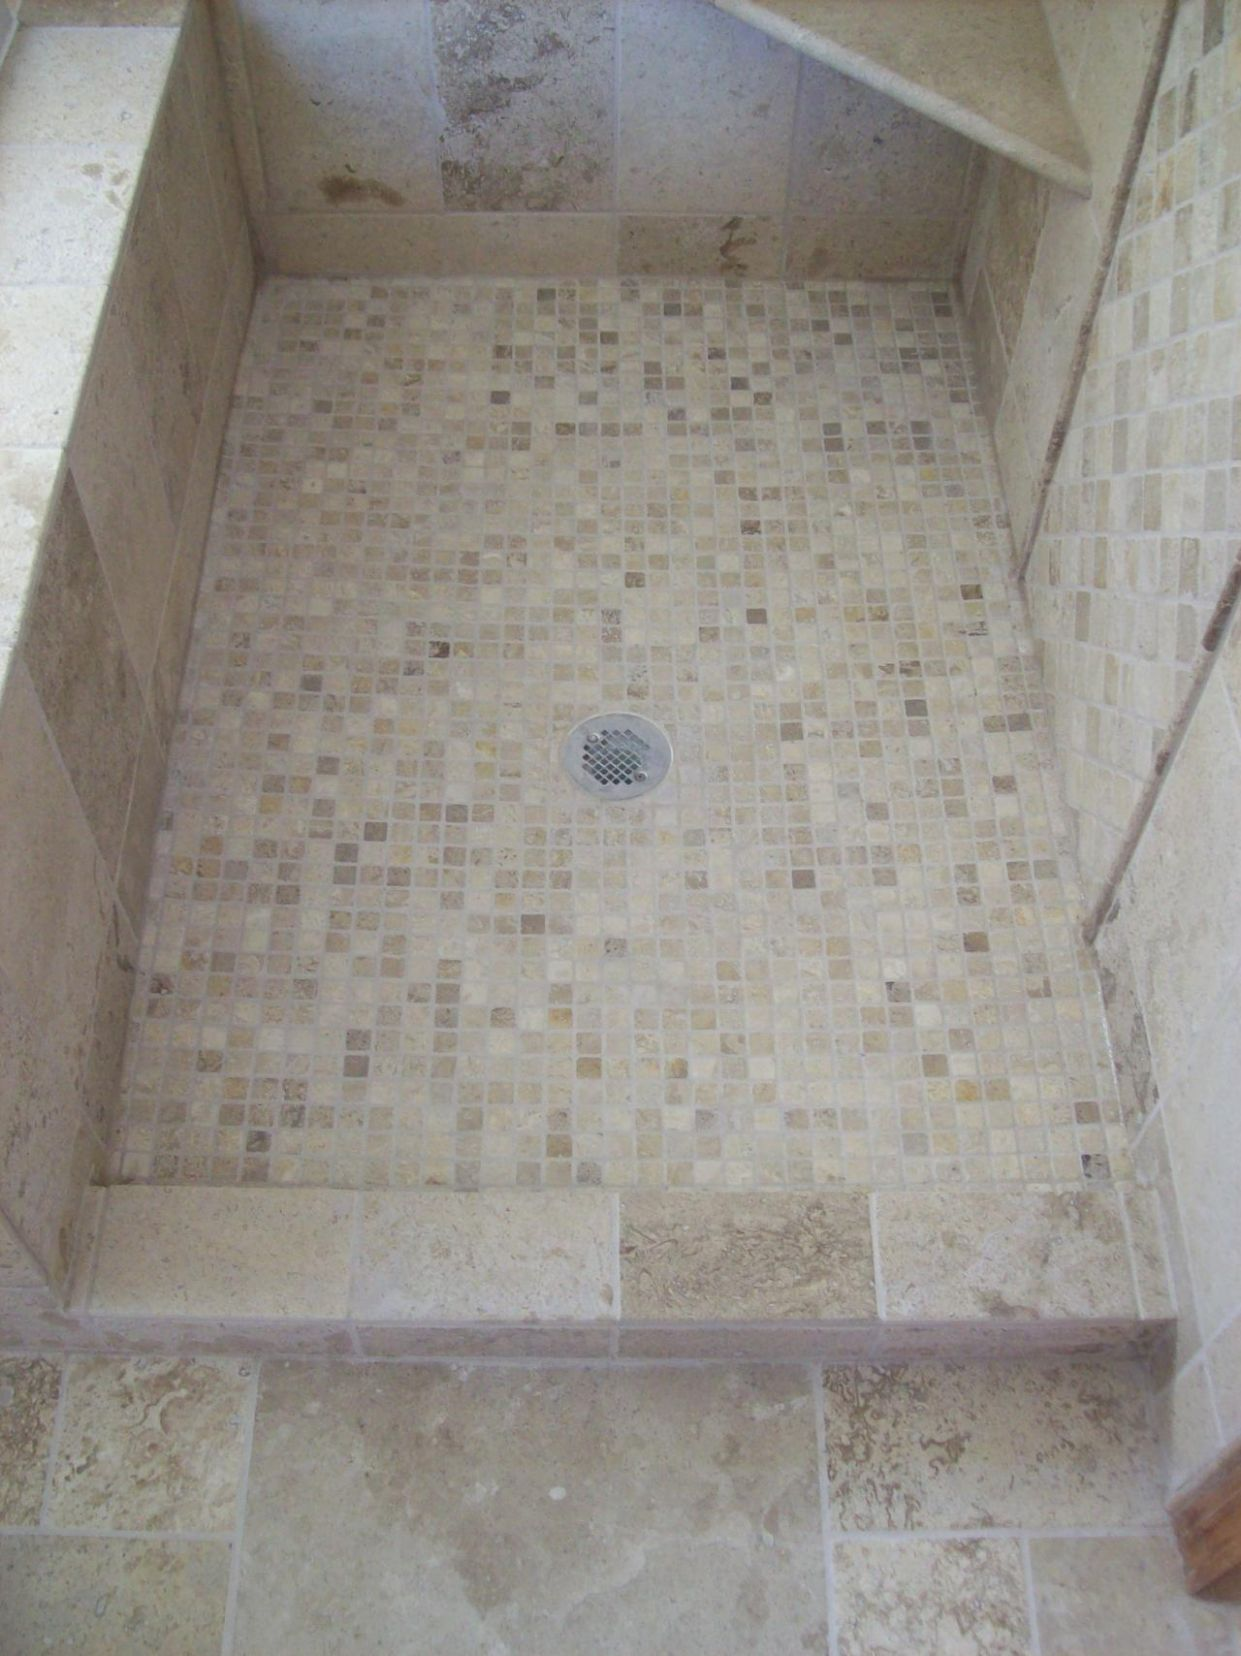 11 great ideas and pictures of bathroom tiles cork - Bathroom Tile ..